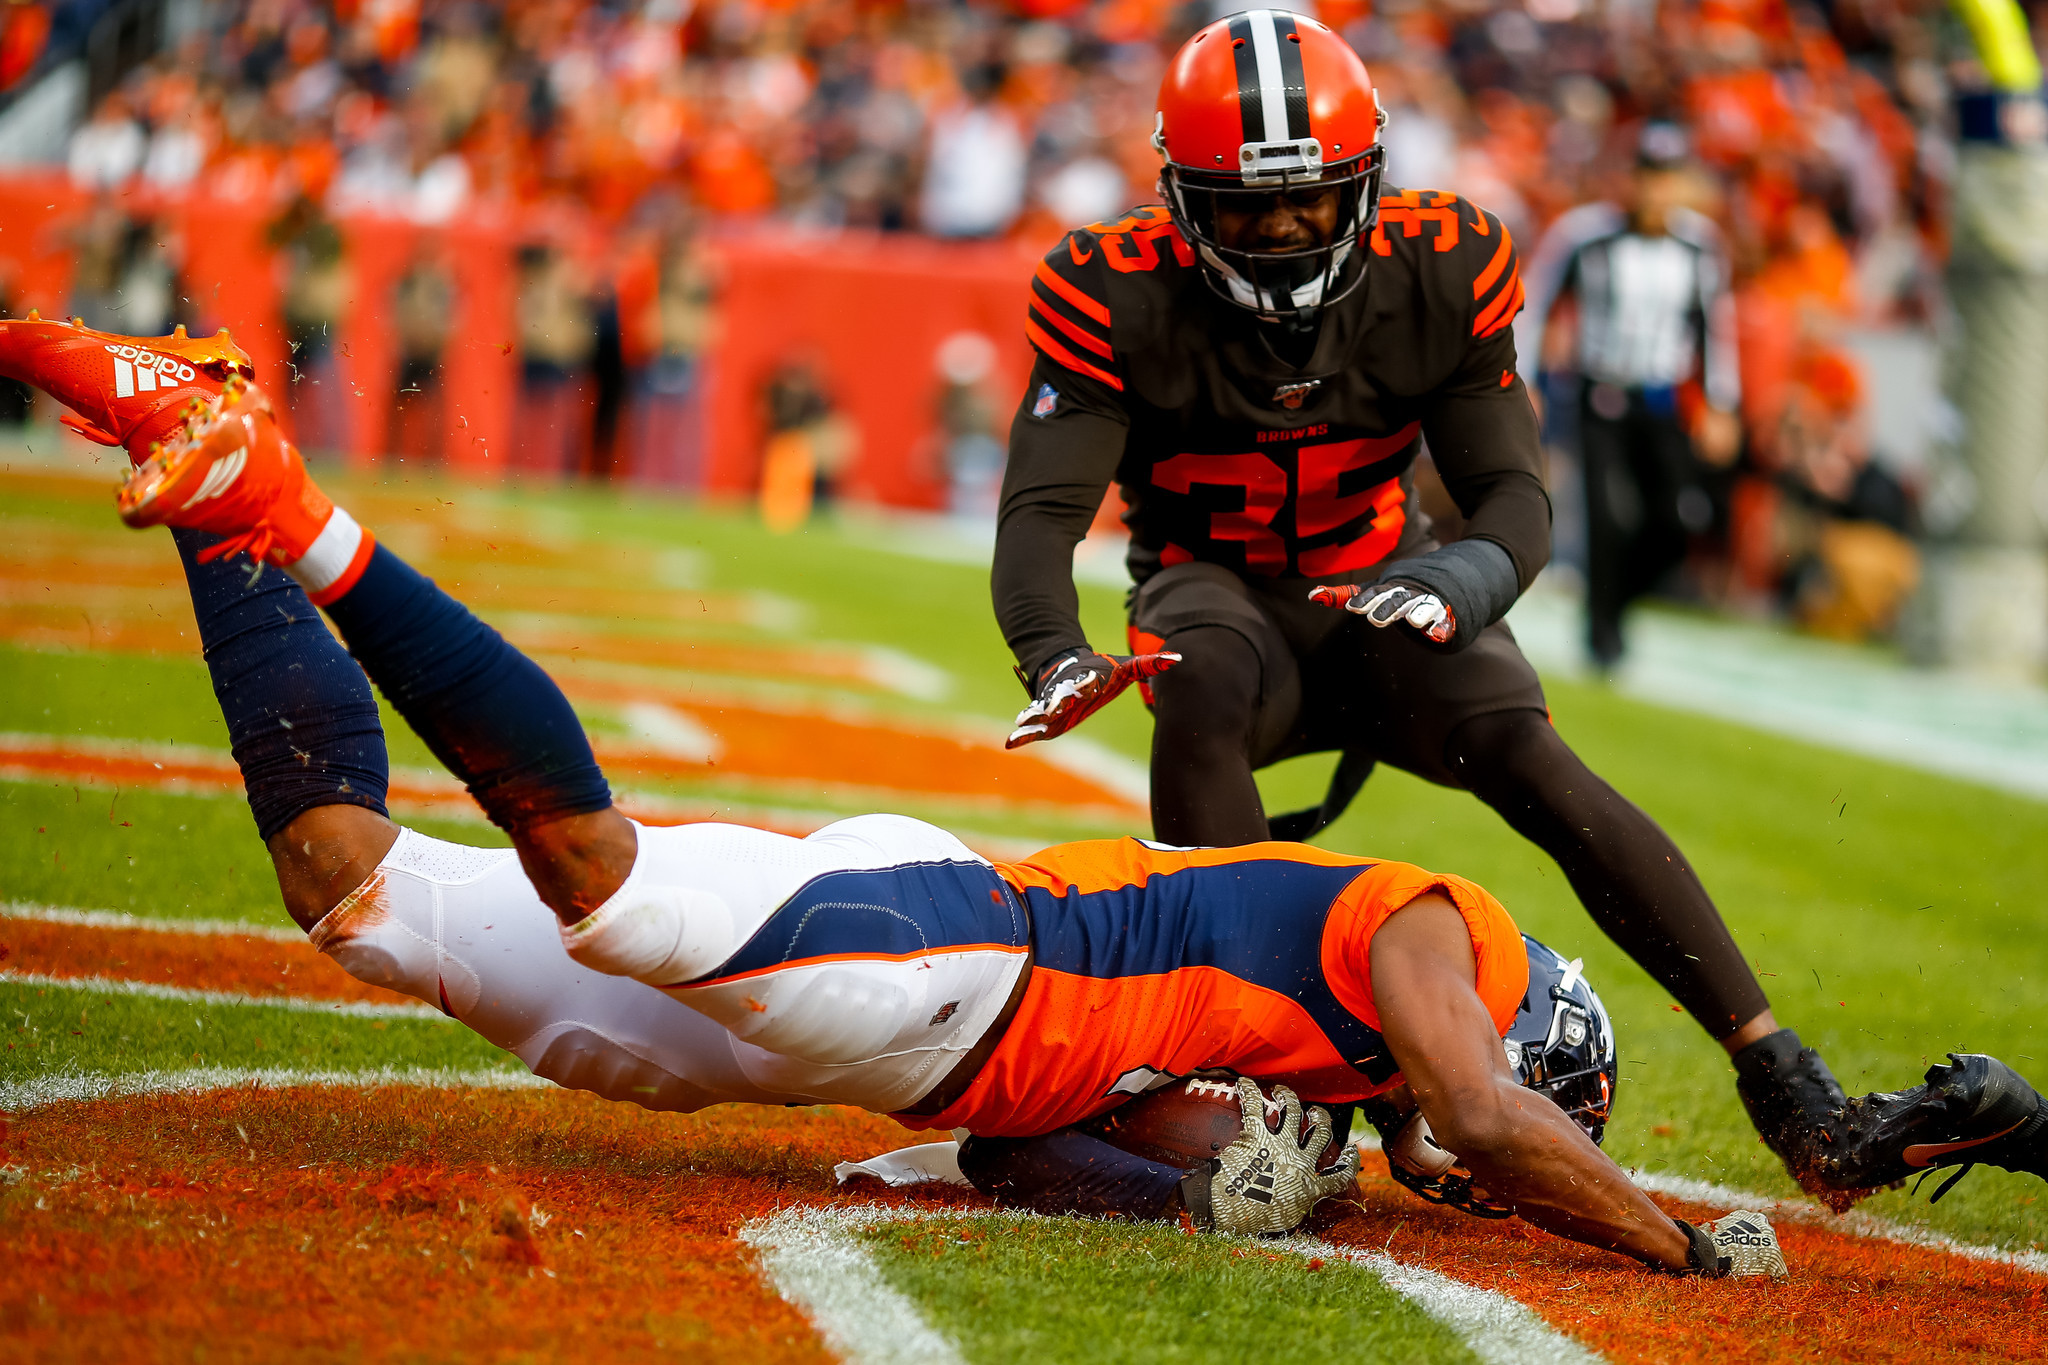 Browns safety Jermaine Whitehead gets Twitter account suspended after issuing death threats